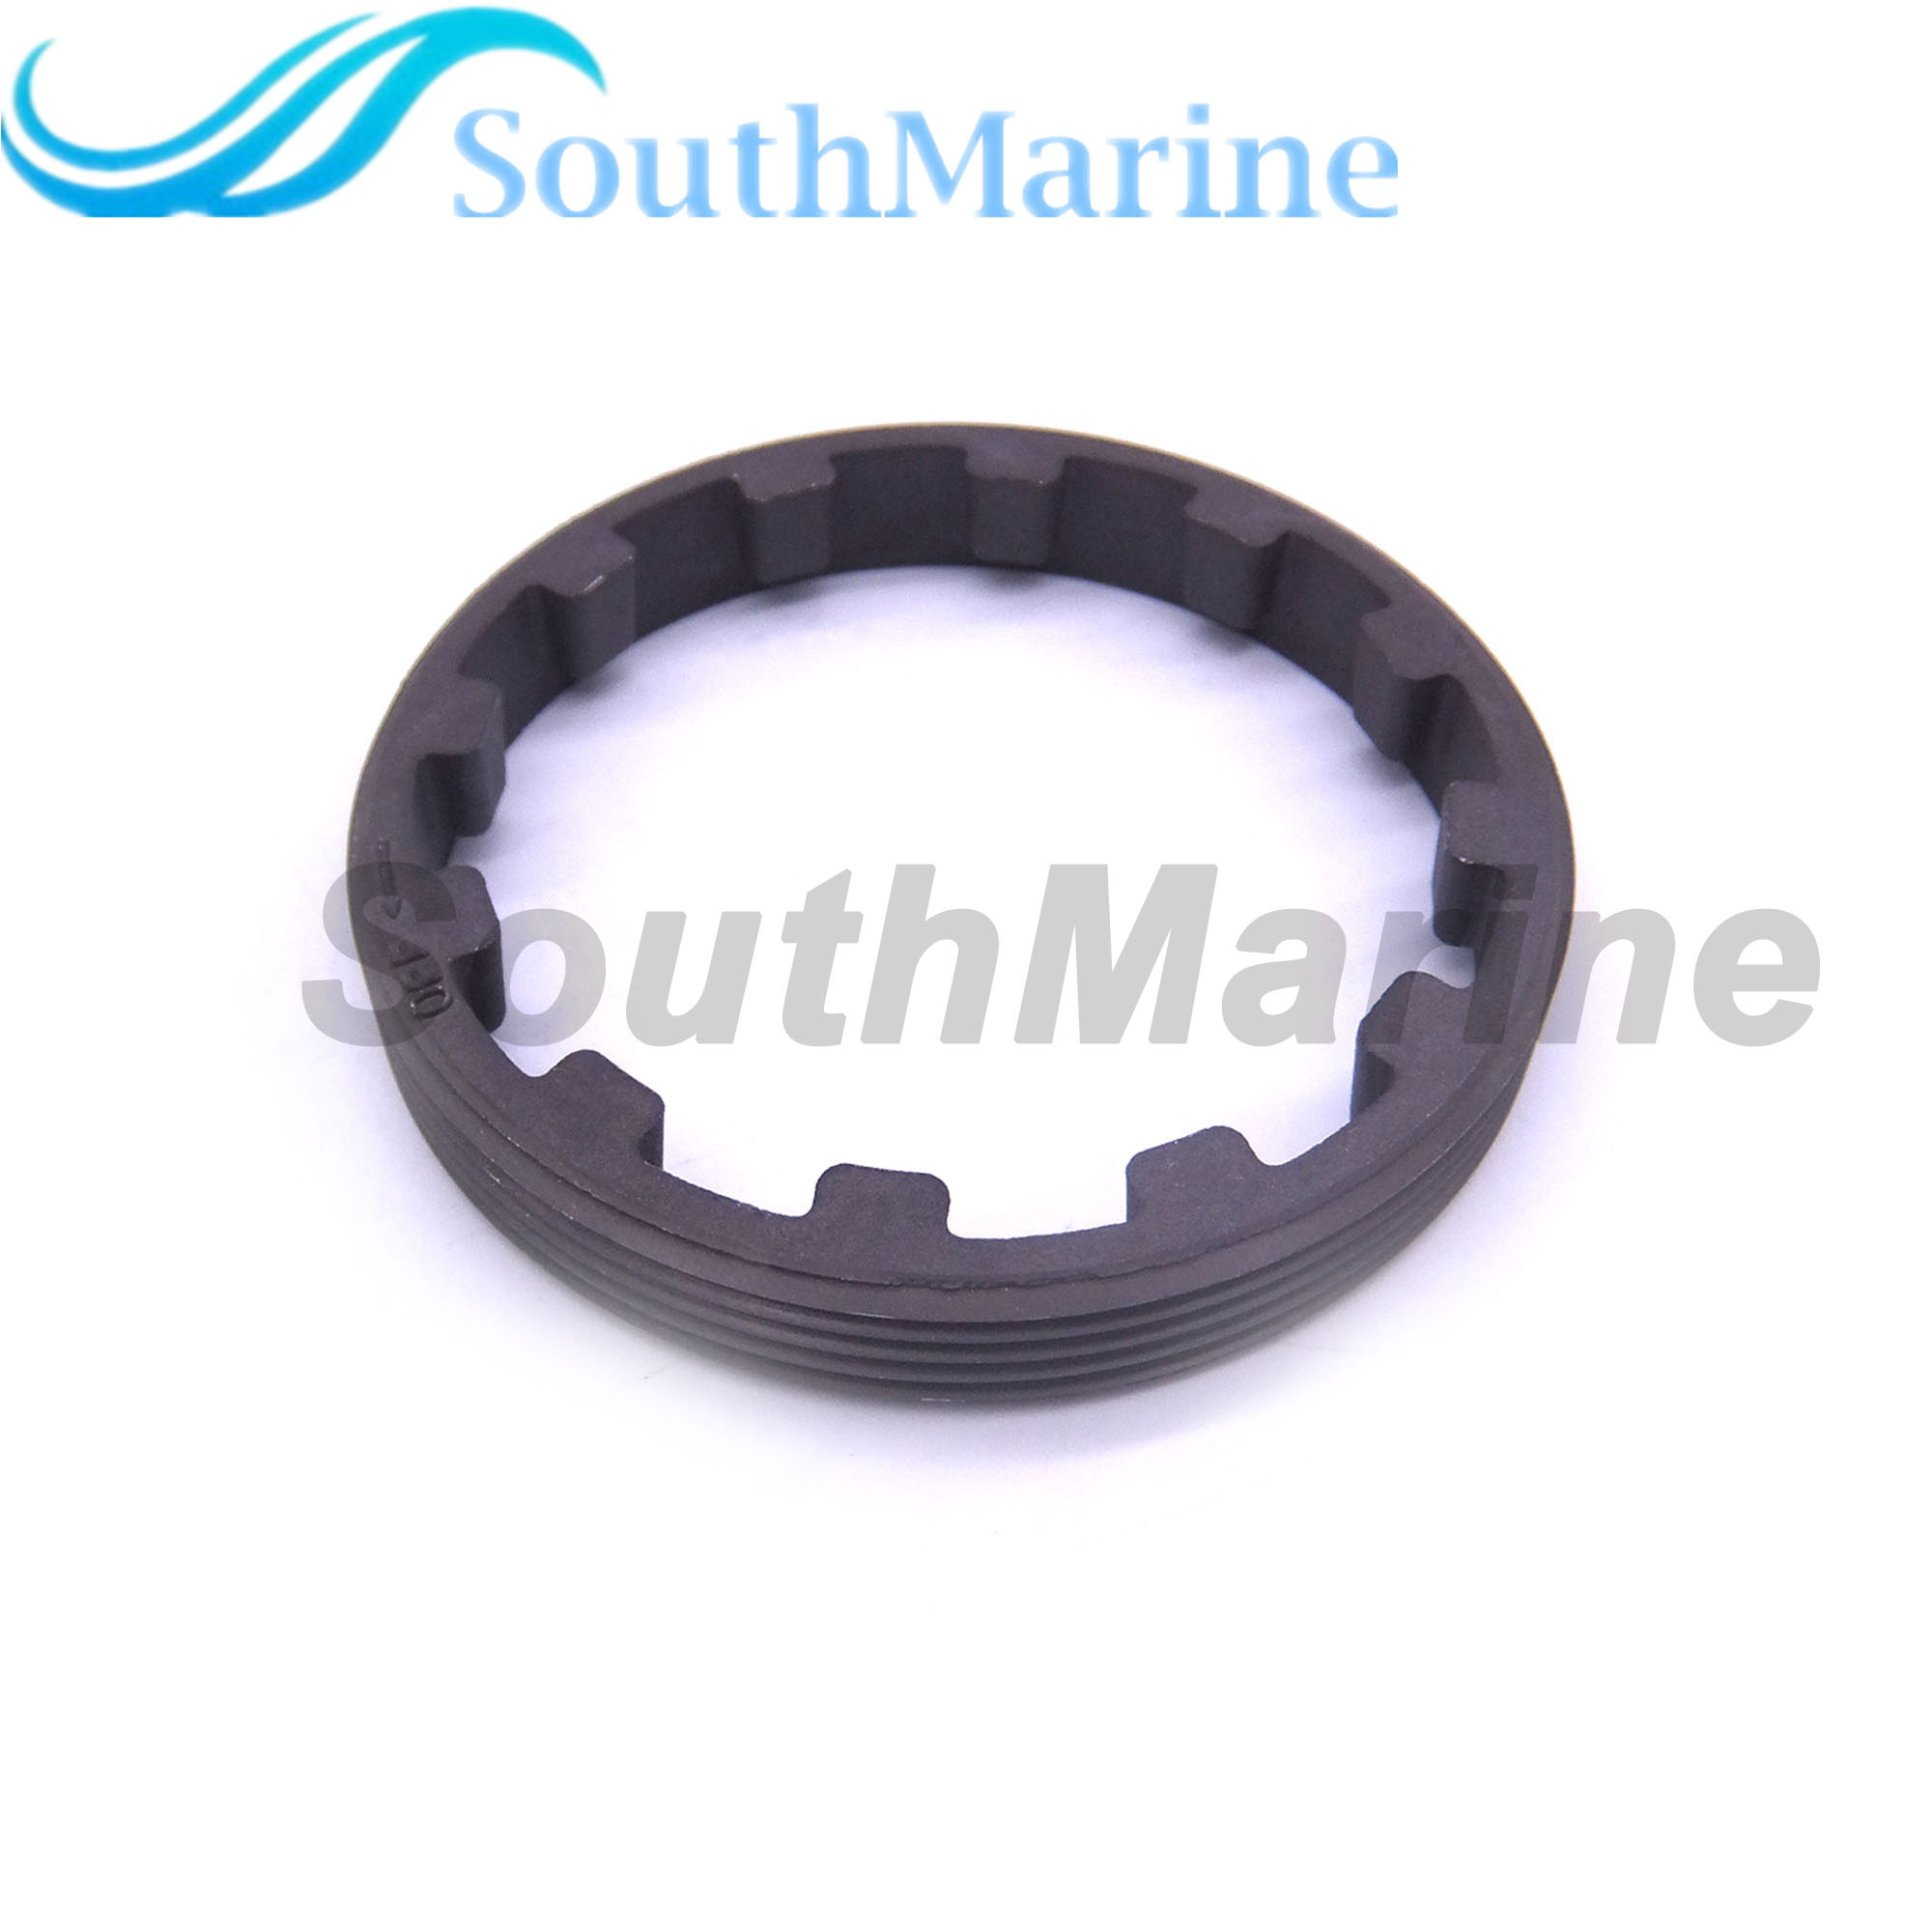 11-8M0059031 Lower Unit Spanner Nut For Mercury Quicksilver Outboard Engine 40HP 48HP 55HP 60HP